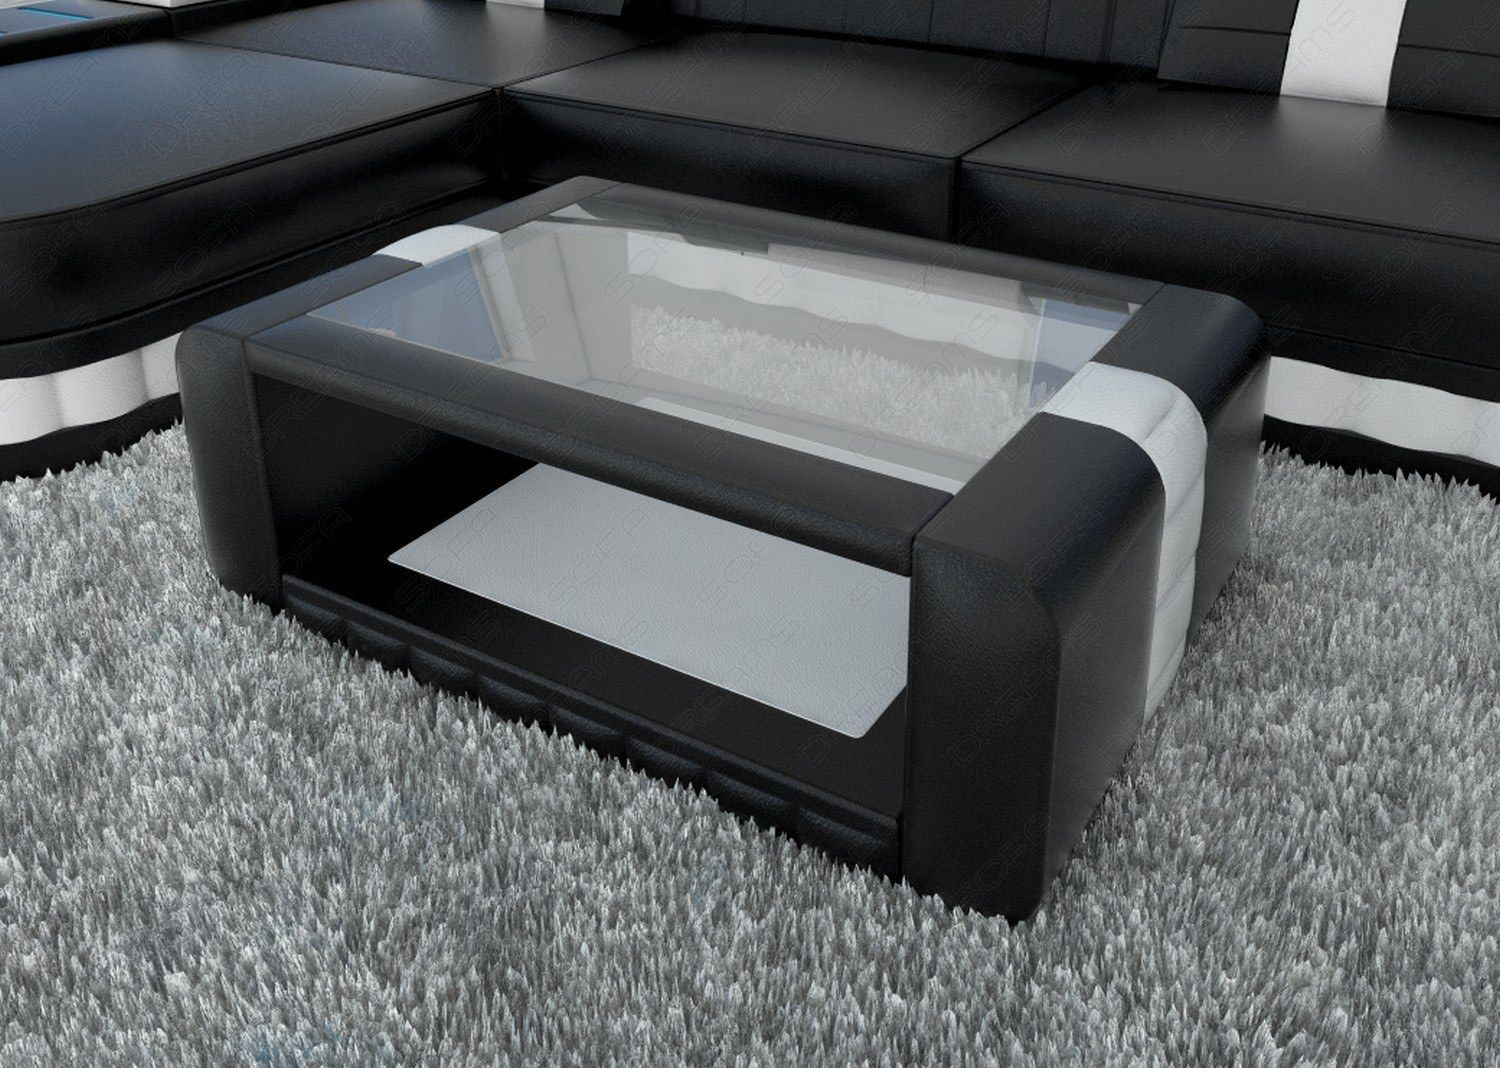 Die Kombination Aus Holz Leder Und Glas Macht Den Couchtisch Bellagio Zu Einem Eyecatcher In Ihrer Wohn Leather Coffee Table Living Room Sofa Design Cool Beds